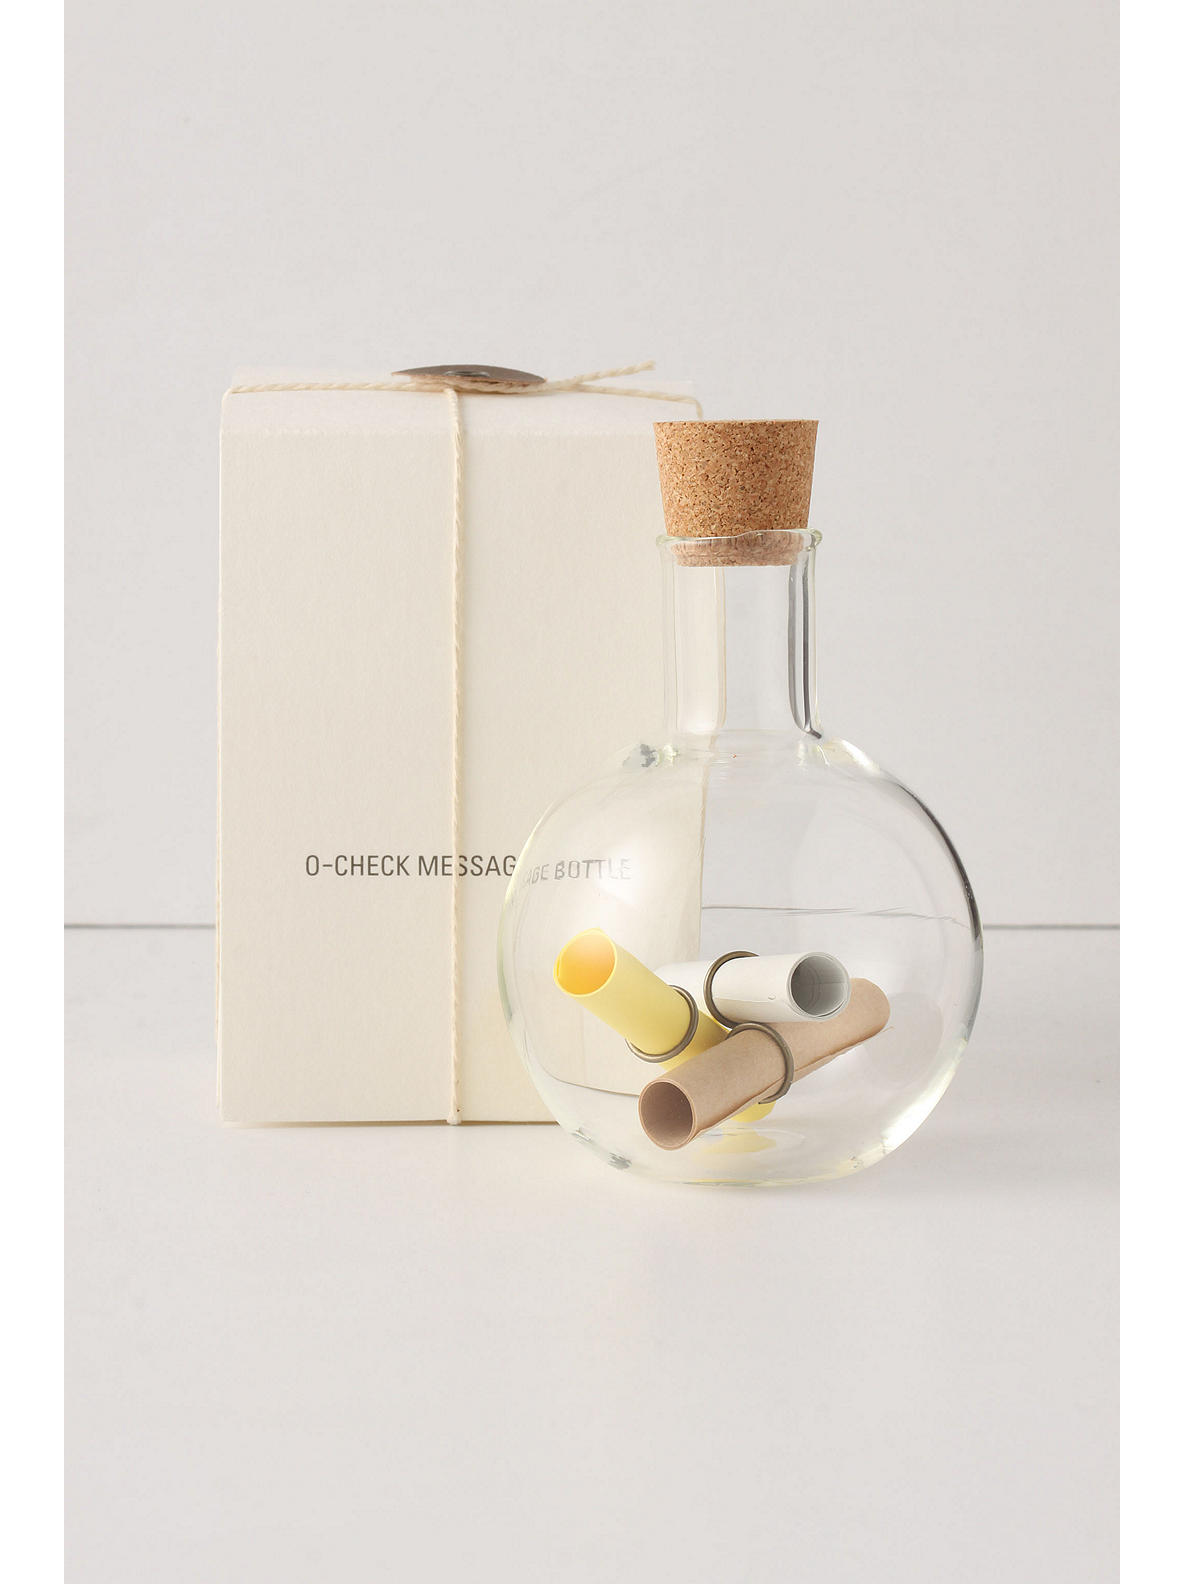 Message In A Bottle - Anthropologie.com :  bottle message paper scroll